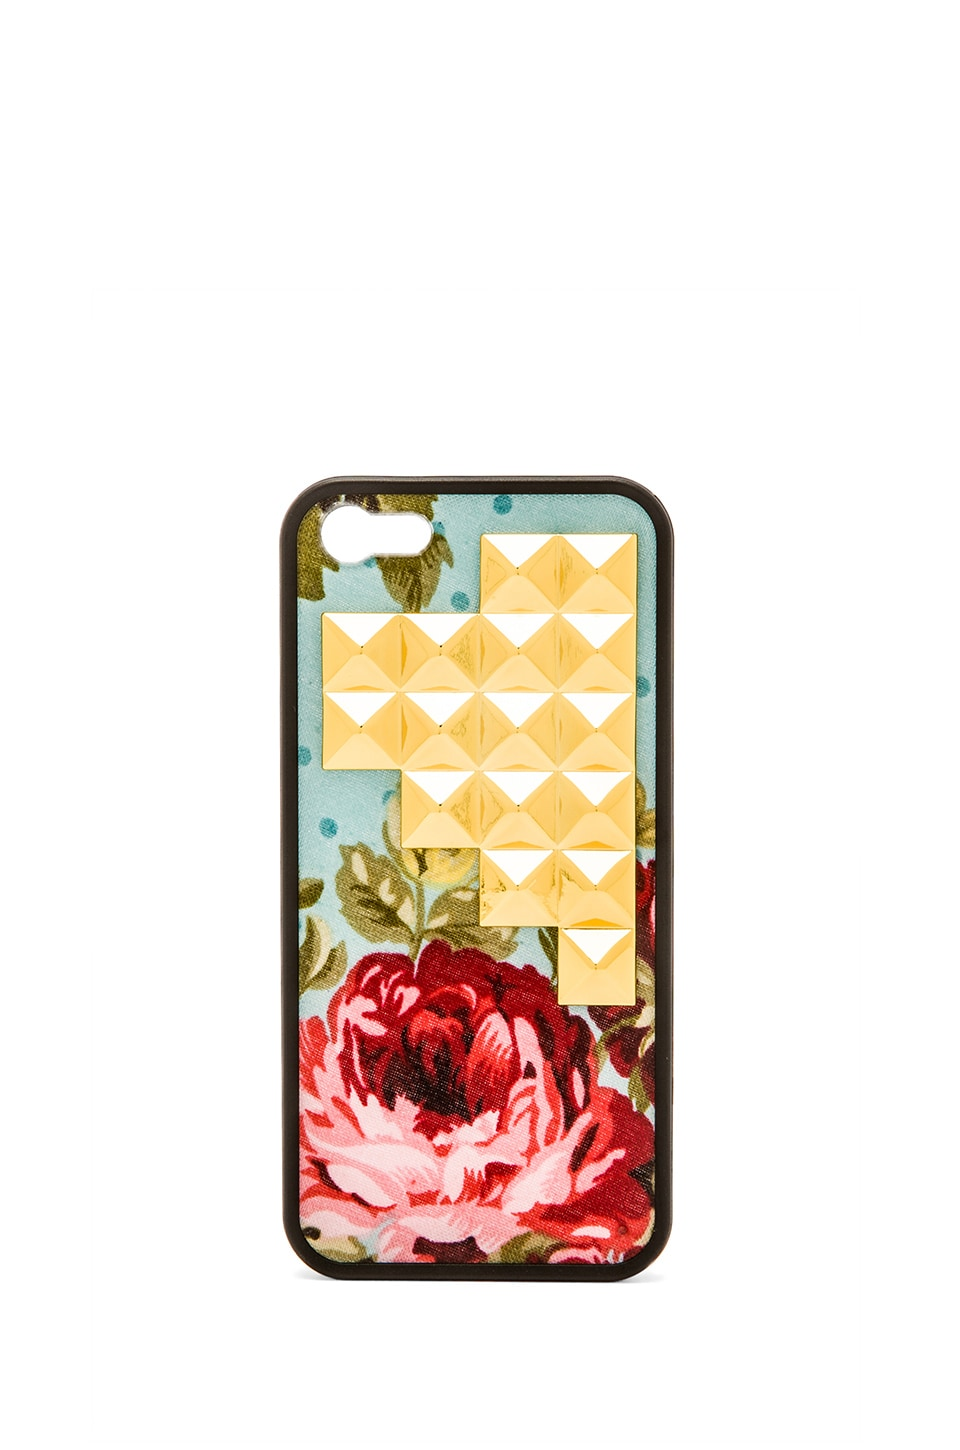 Wildflower Blue Floral Iphone 5/5S Case in Gold Studded Pyramid